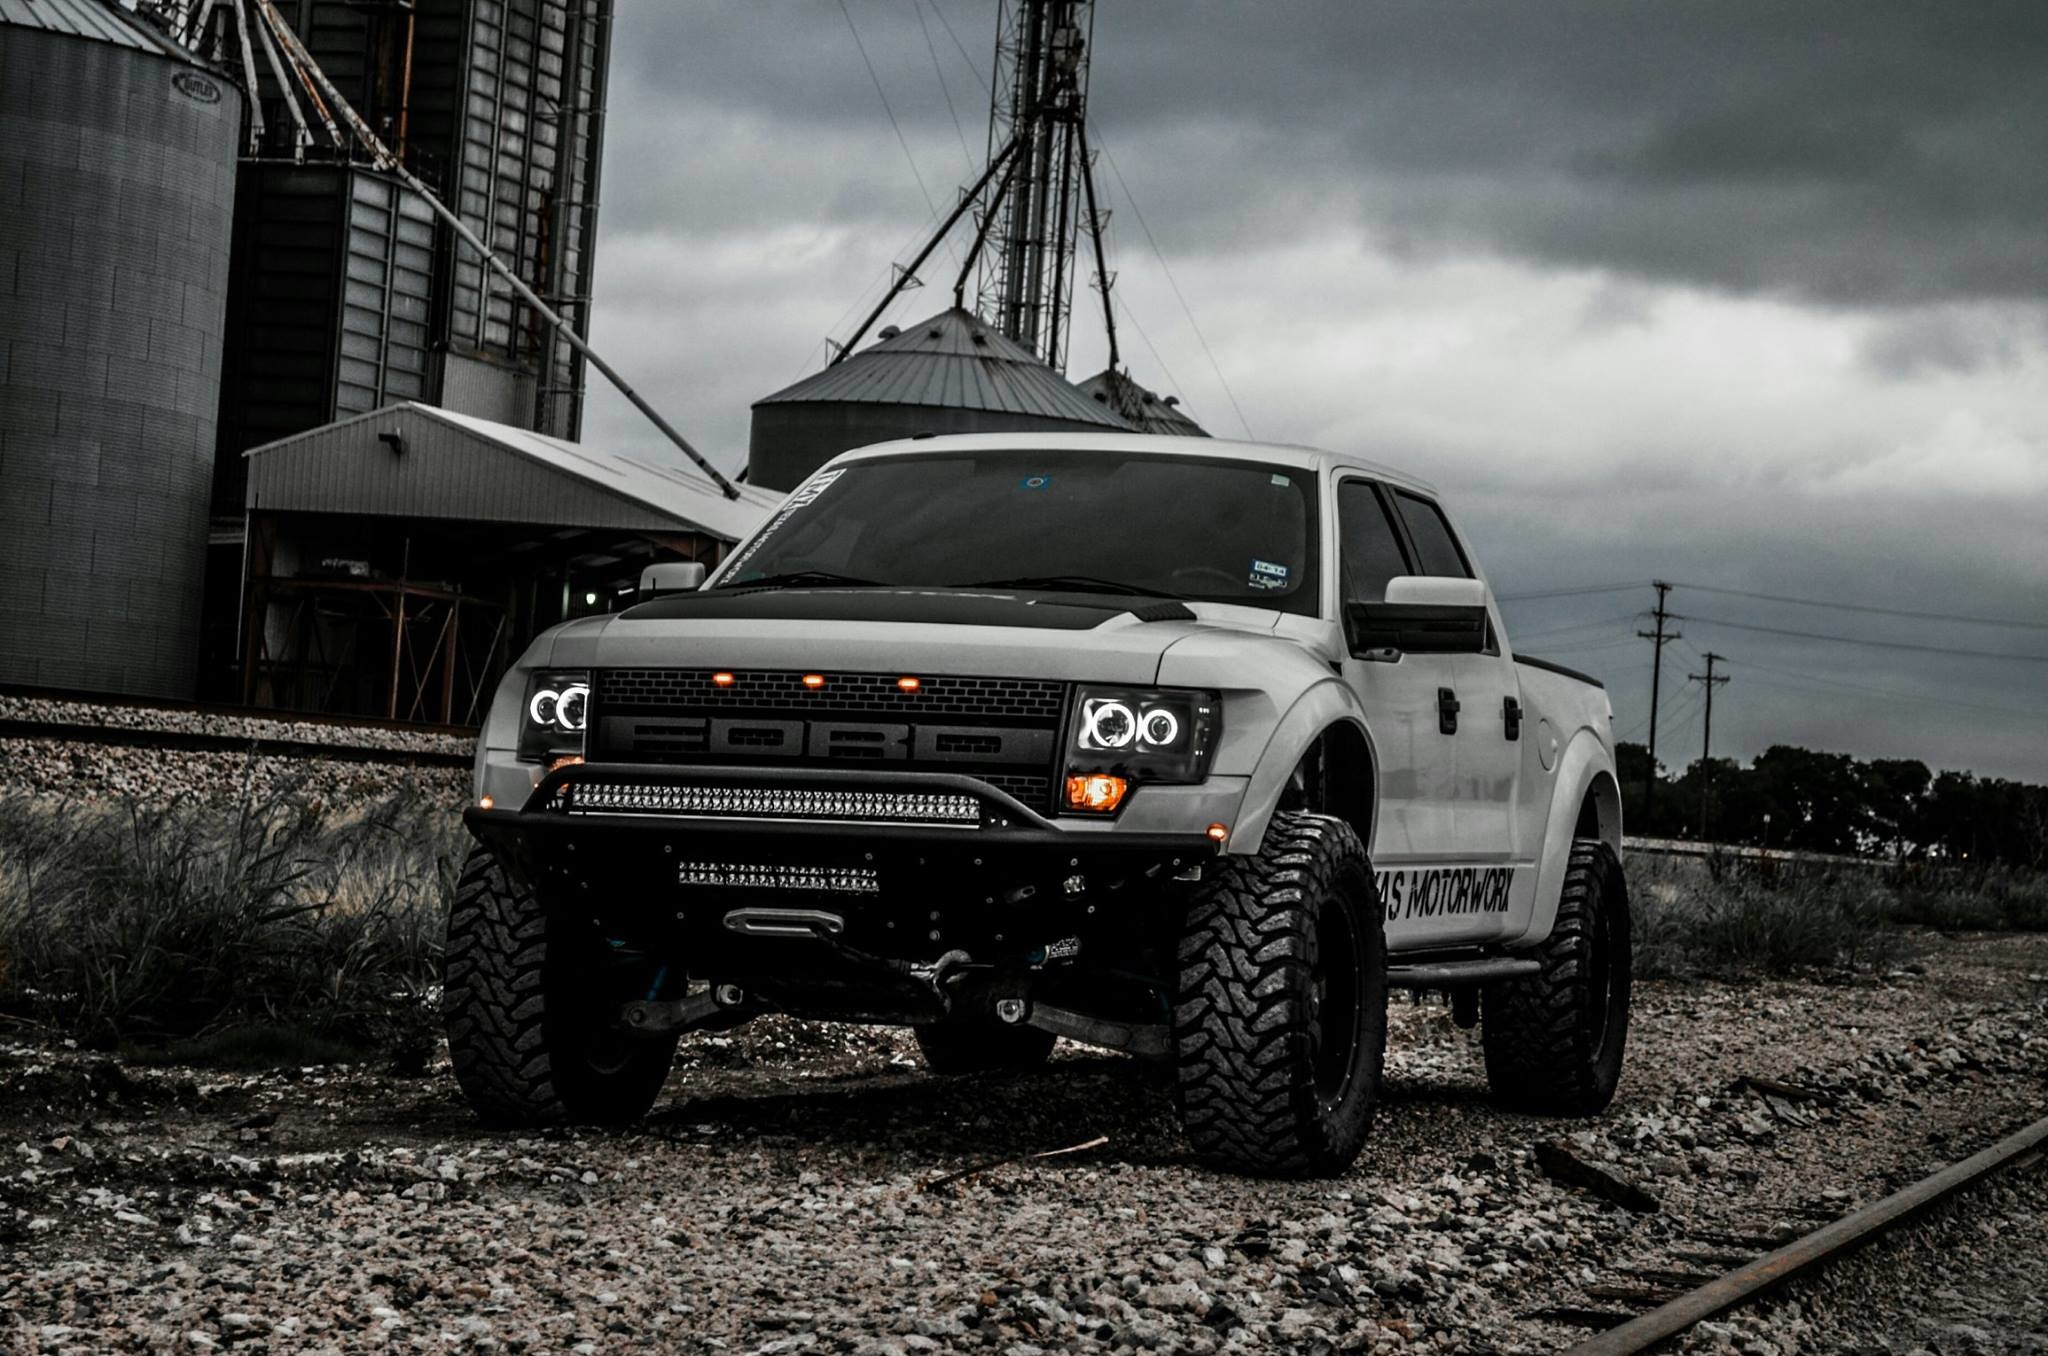 Ford Raptor Wallpaper Hd 74 Images